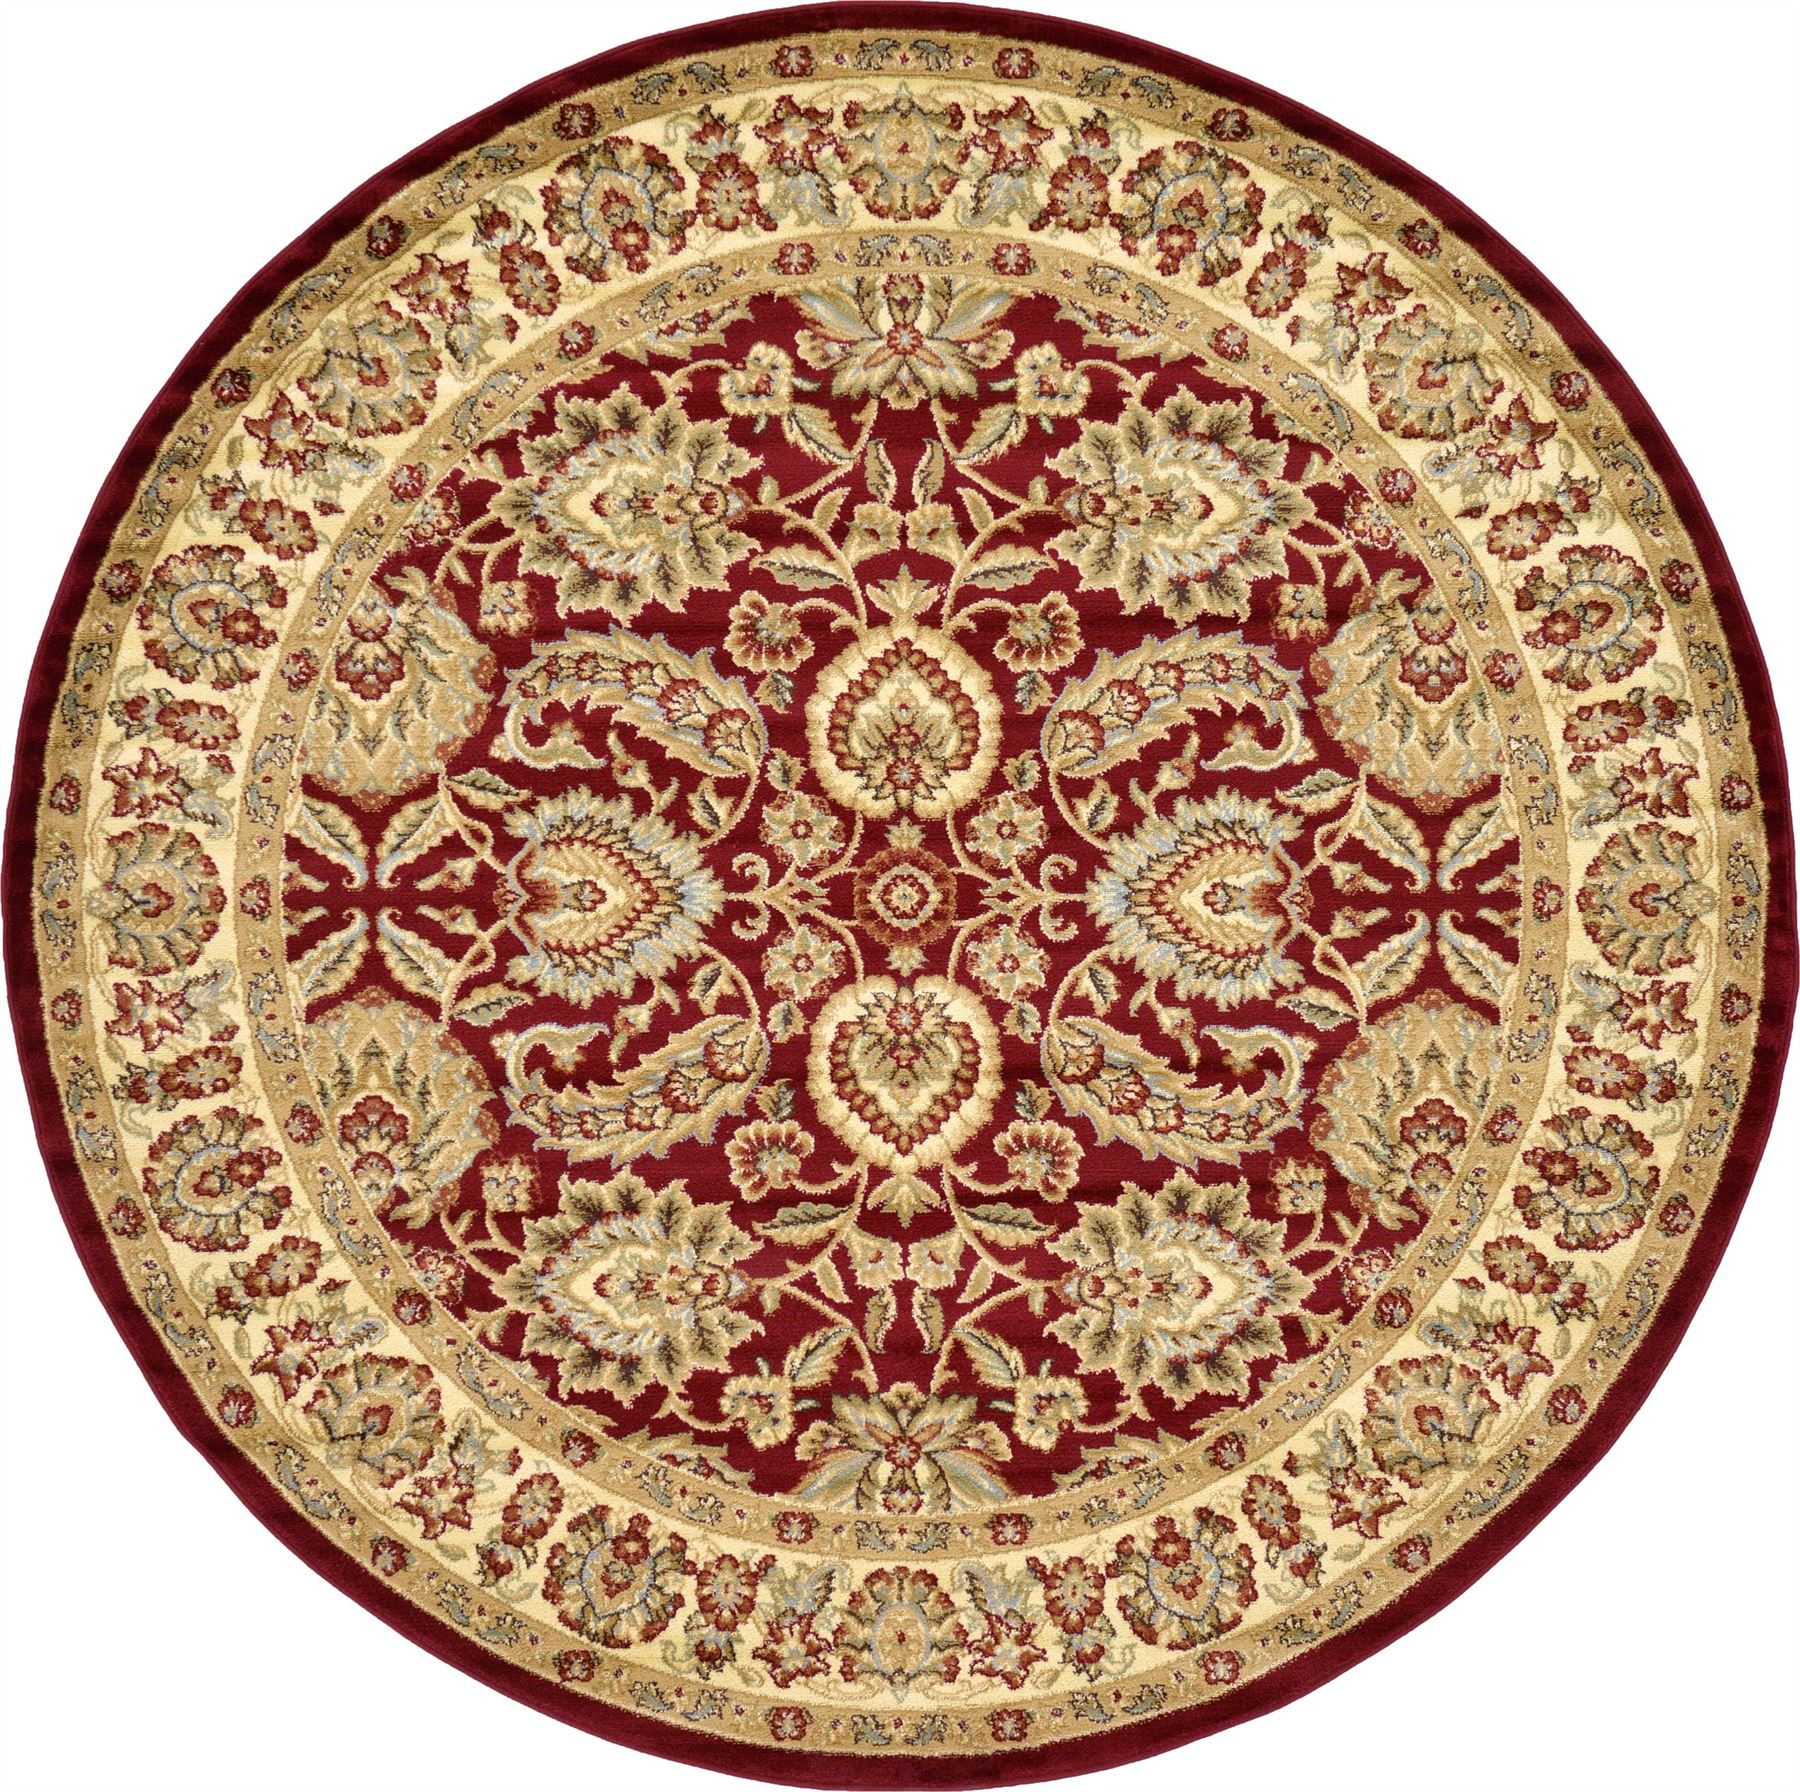 Traditional Area Rug Floral Persian Desigh Large Red Cream